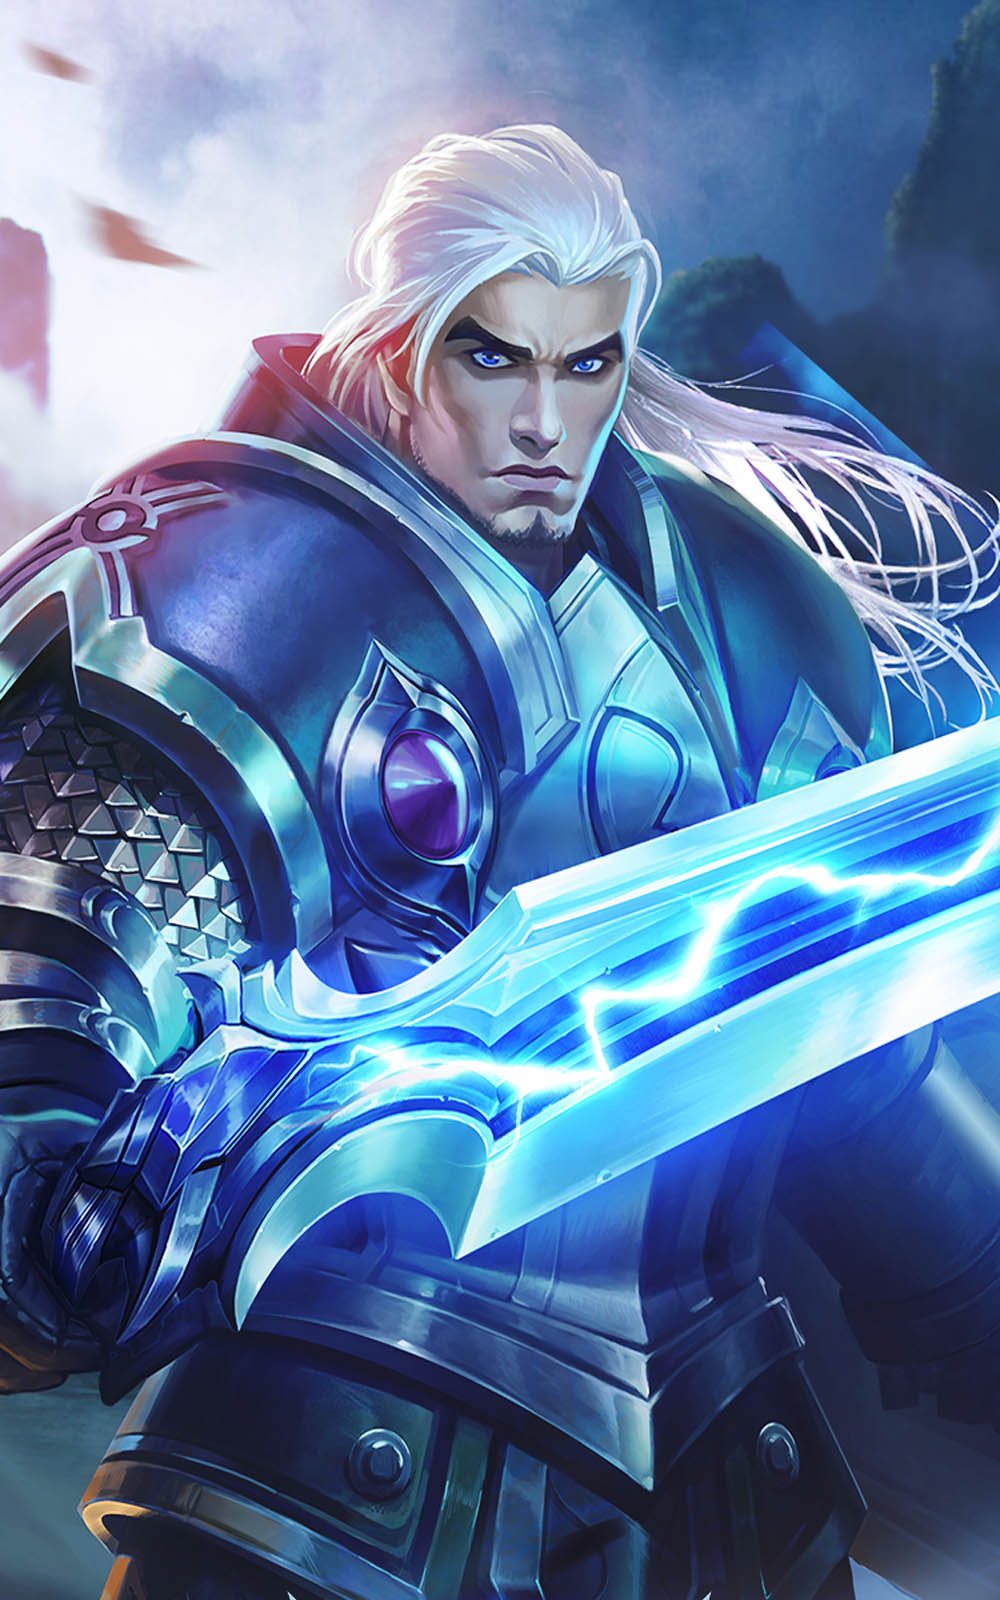 Download Tigreal Mobile Legends Hero Free Pure 4K Ultra HD